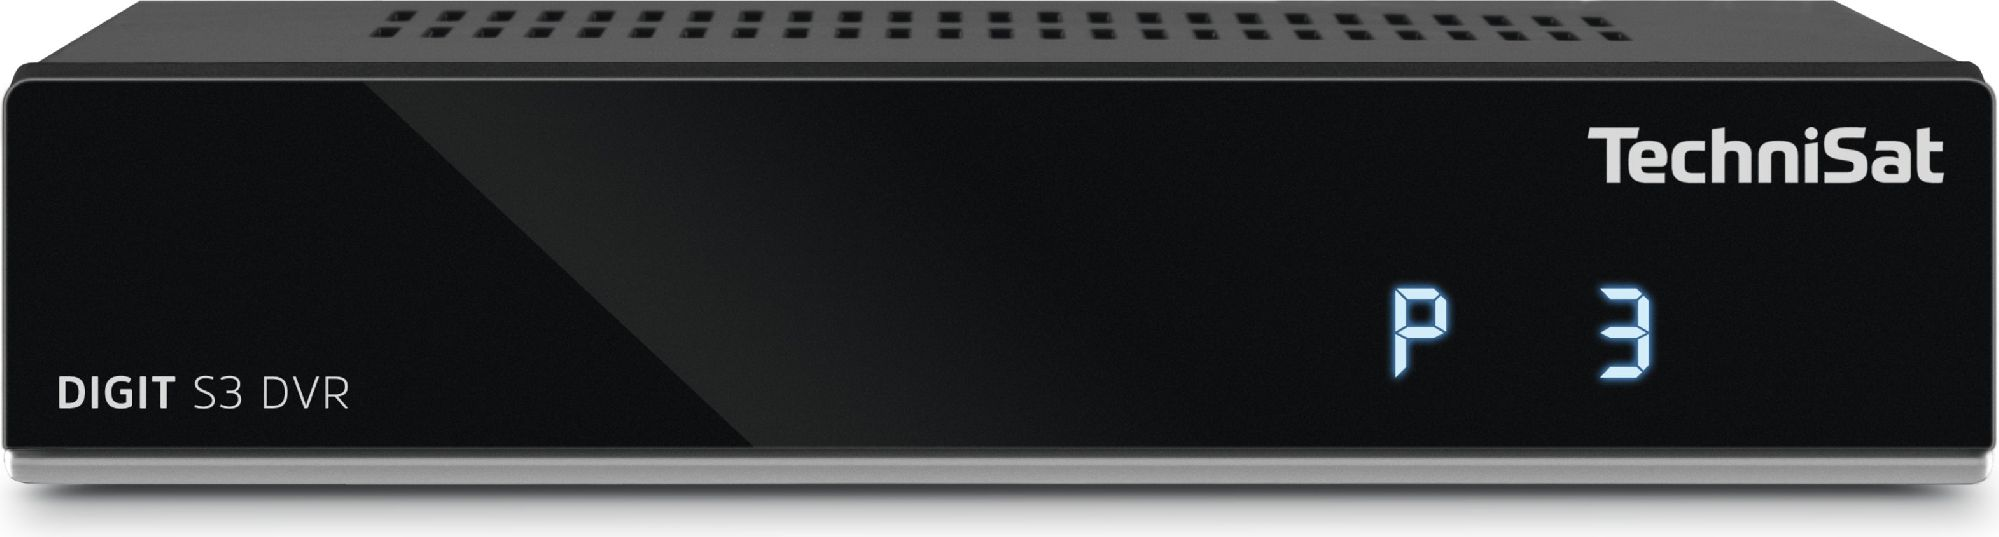 Technisat DIGIT S2 DVR black resīveris